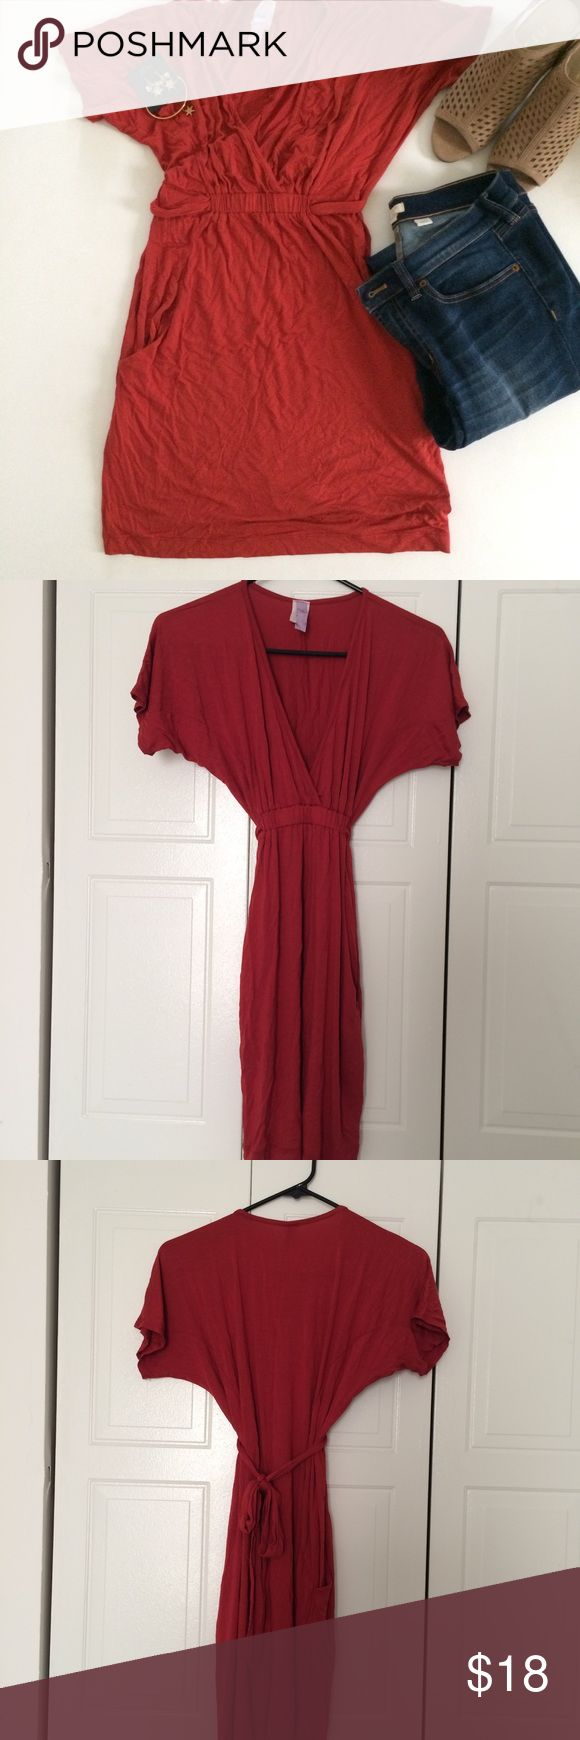 """Dolman sleeved, Deep V Tunic EUC. Very cute tunic for summer and fall. Great burnt orange color. From Francesca's Collection. Ties back to cinch the waste and has pockets. It has a deep v-neck neck line. You may need a cami. It's a little too short to be a dress on me, I'm 5'5"""". It just covers my rear end. I've worn it with leggings or skinny jeans. Only worn twice. Francesca's Collections Tops Tunics"""